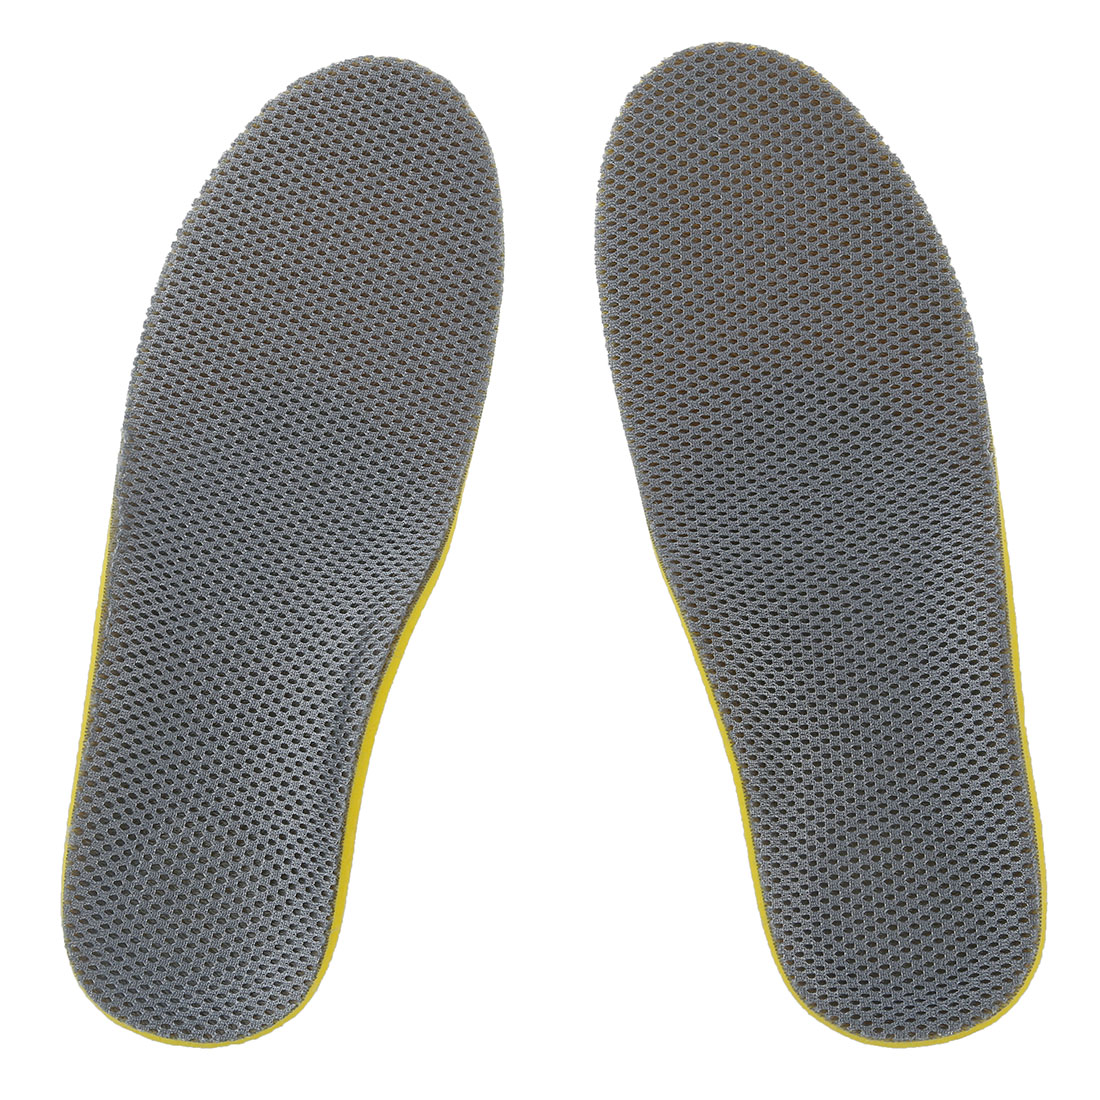 Comfortable Orthotic Shoes Insoles Inserts High Arch Support Pad shoes pads memory foam support orthotic insoles arch